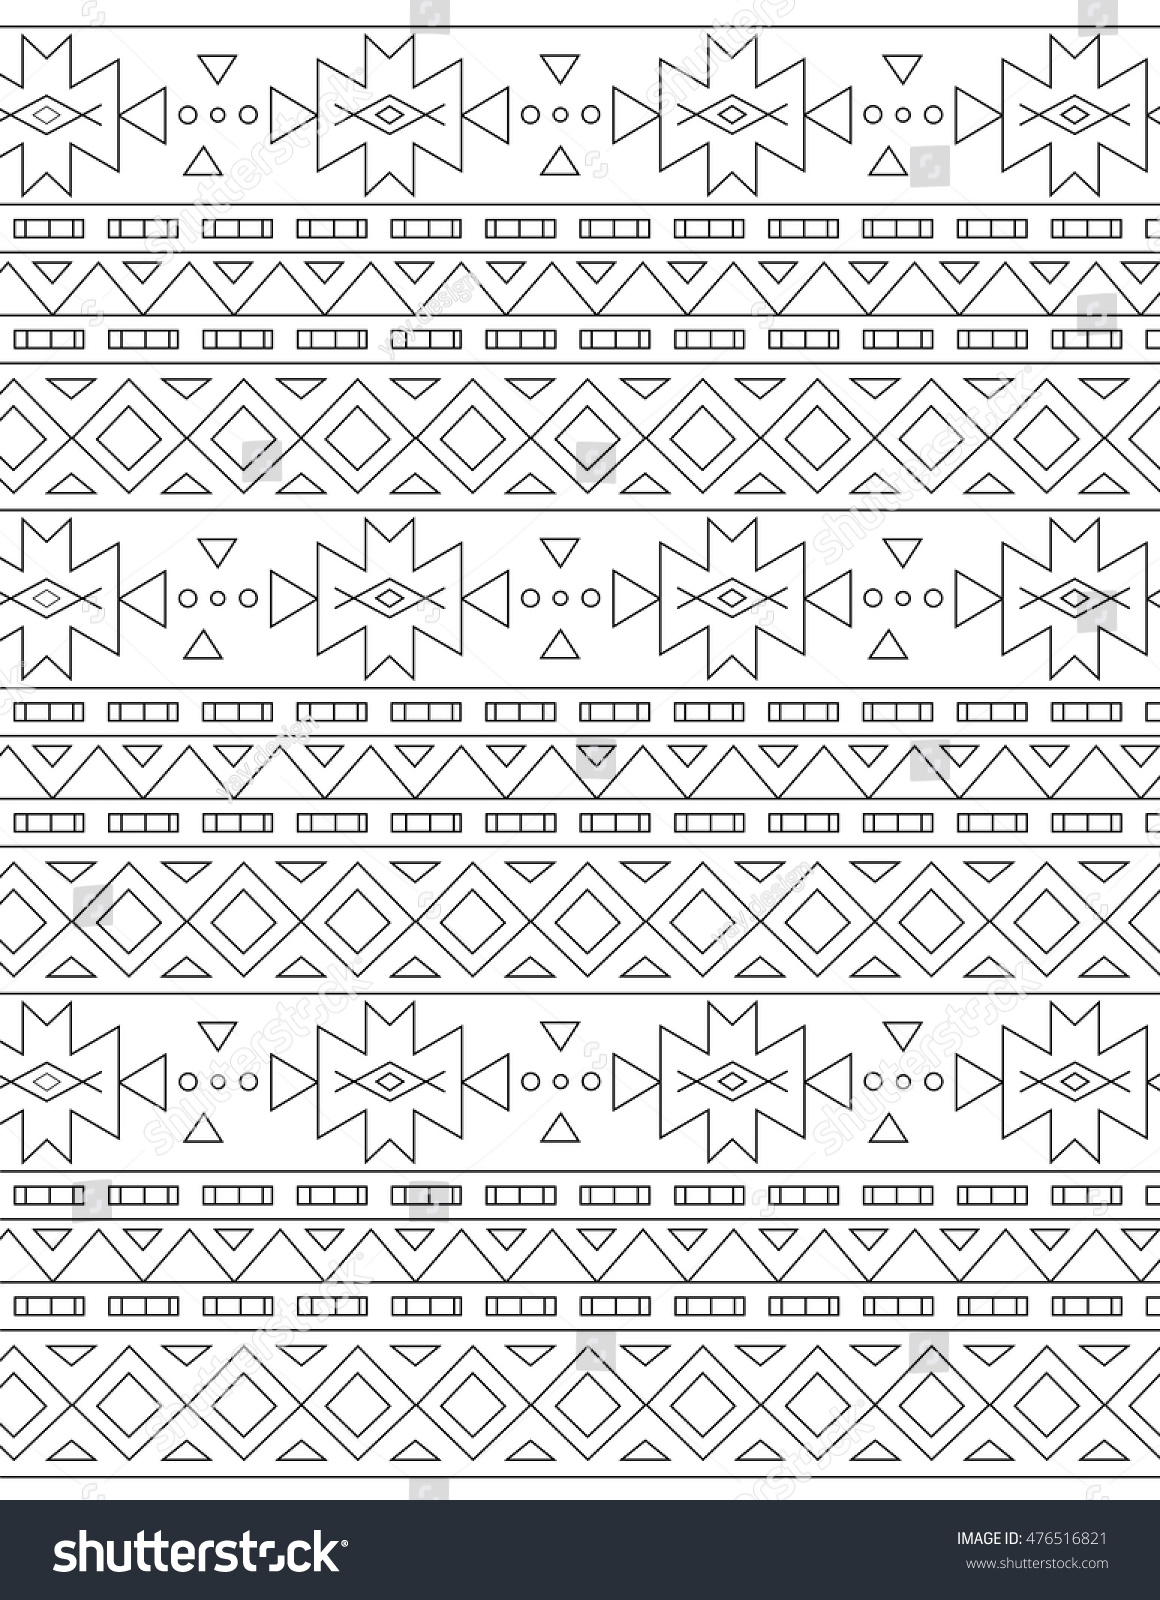 Outline Antistress Aztec Coloring Pages Adults Stock Vector Aztec Coloring Pages